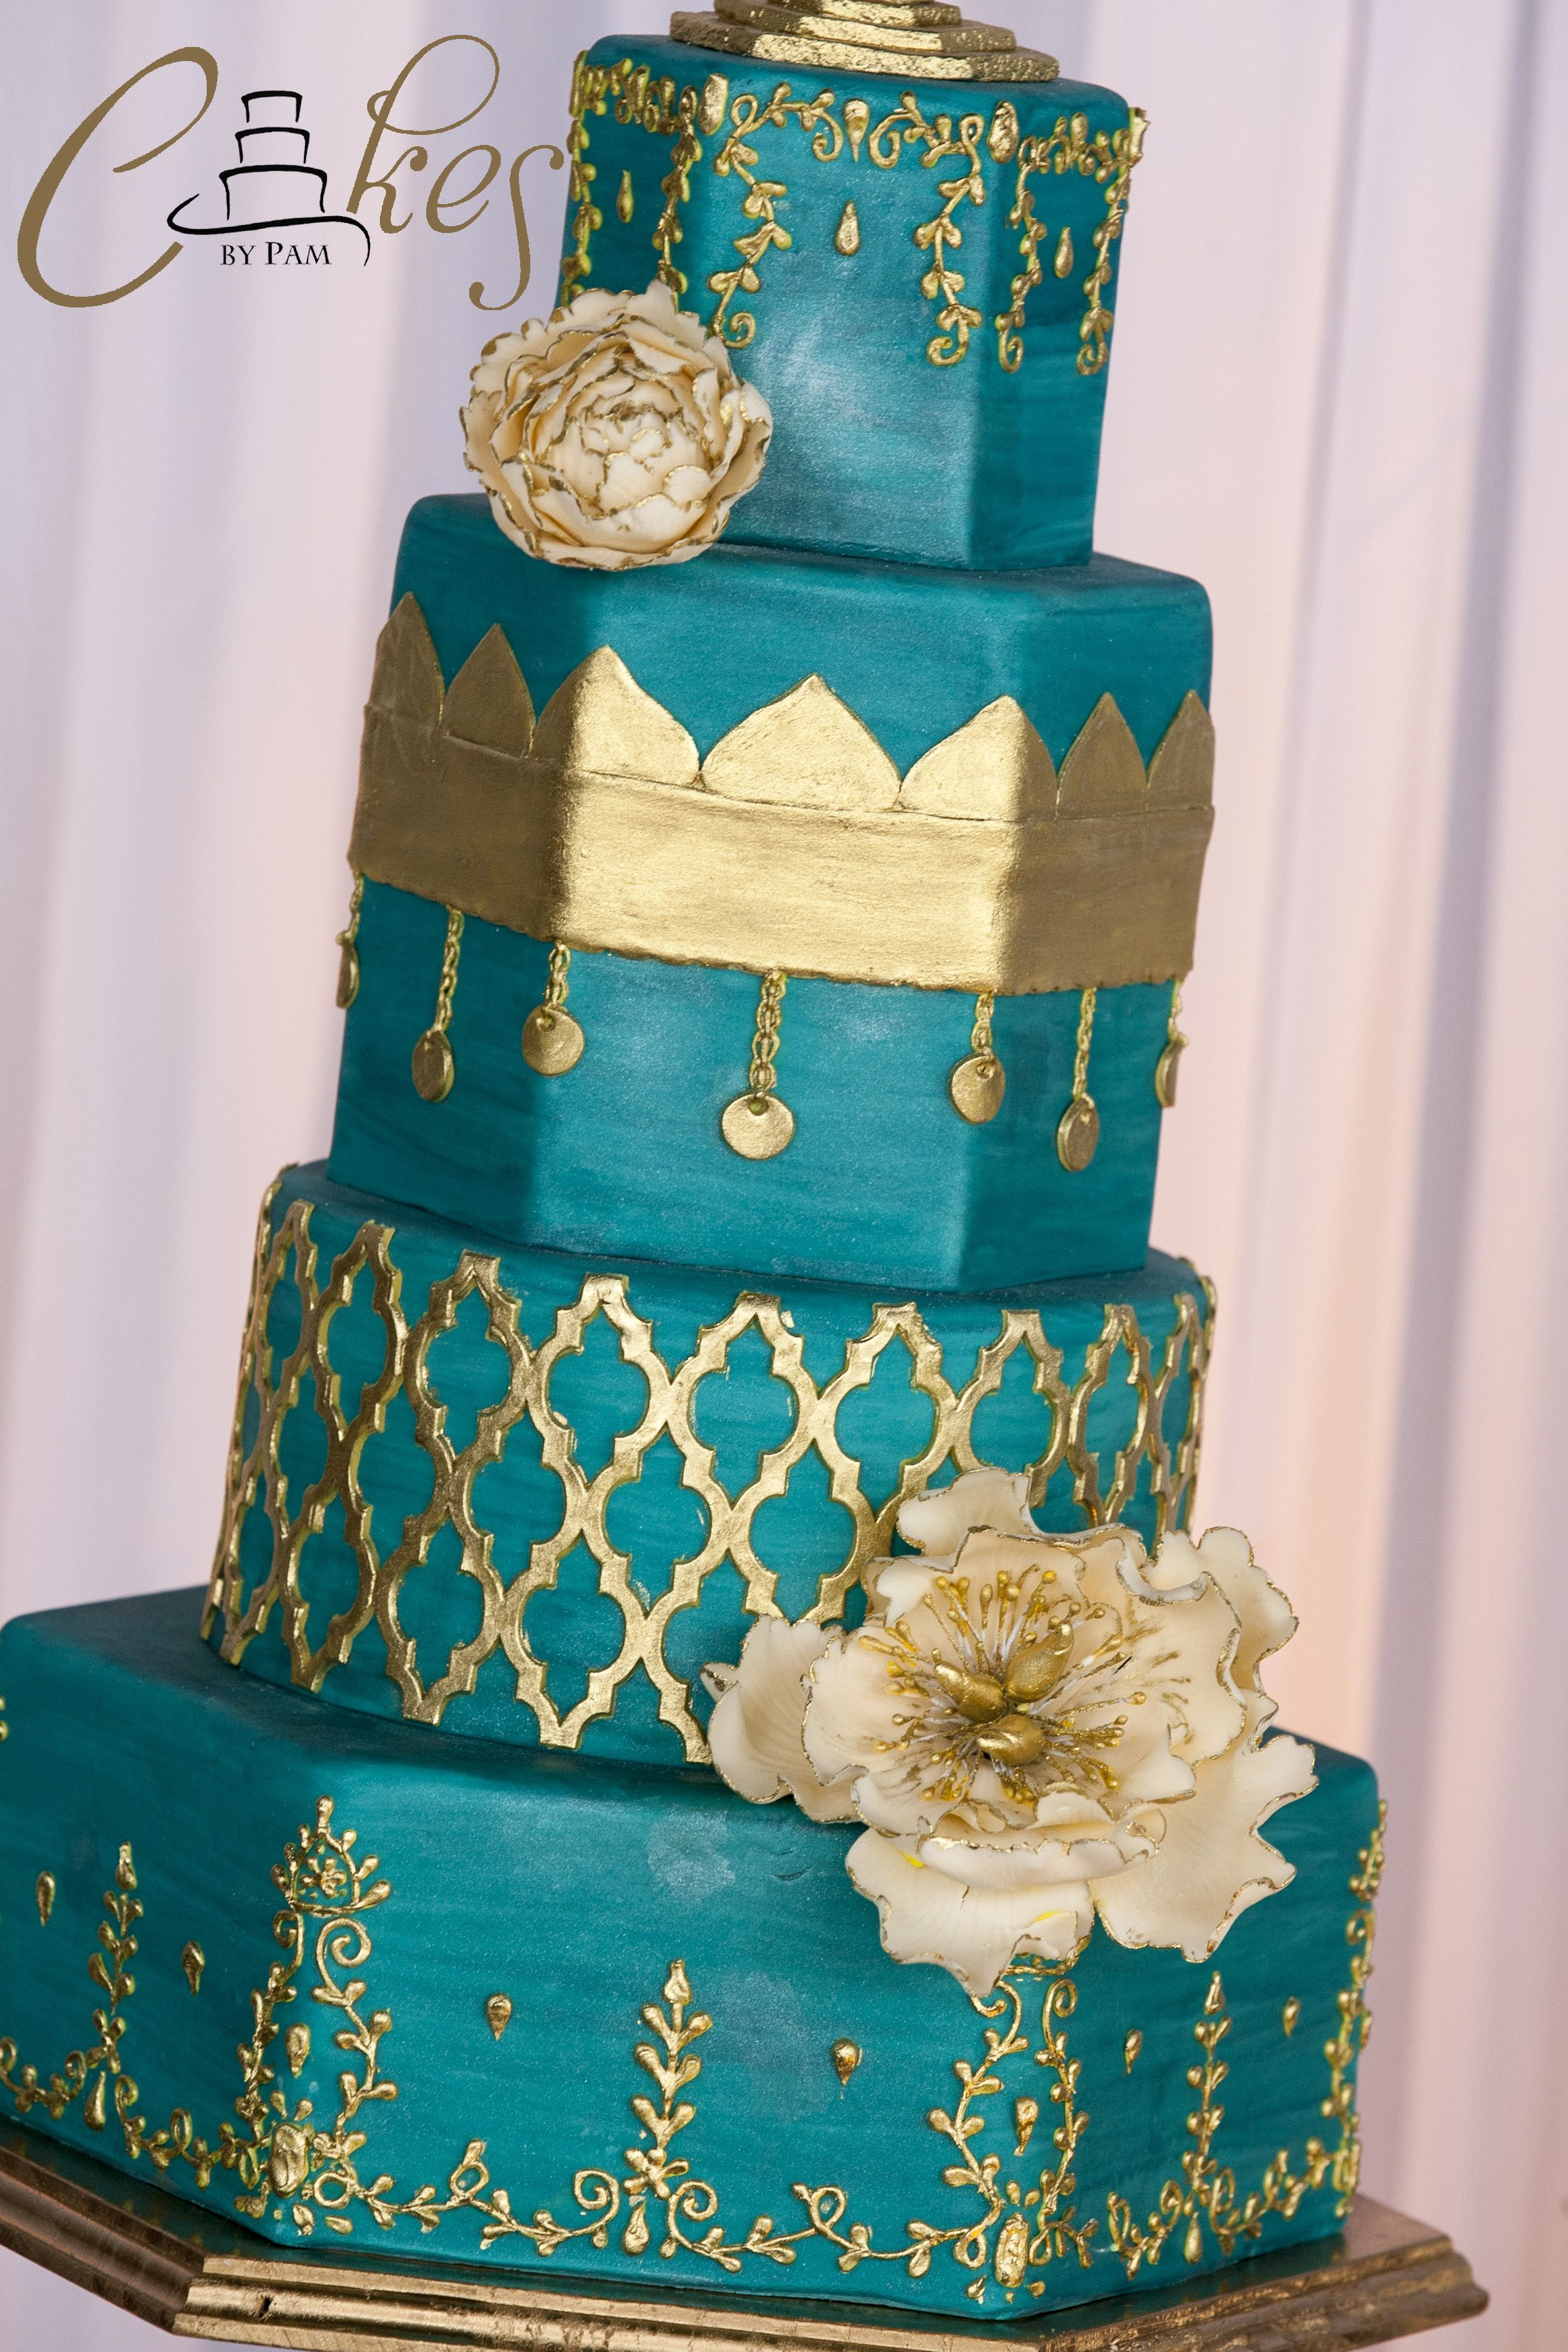 Moroccan Inspired Wedding Cake With Intricate Scrollwork Lattice And Sugar Peonies